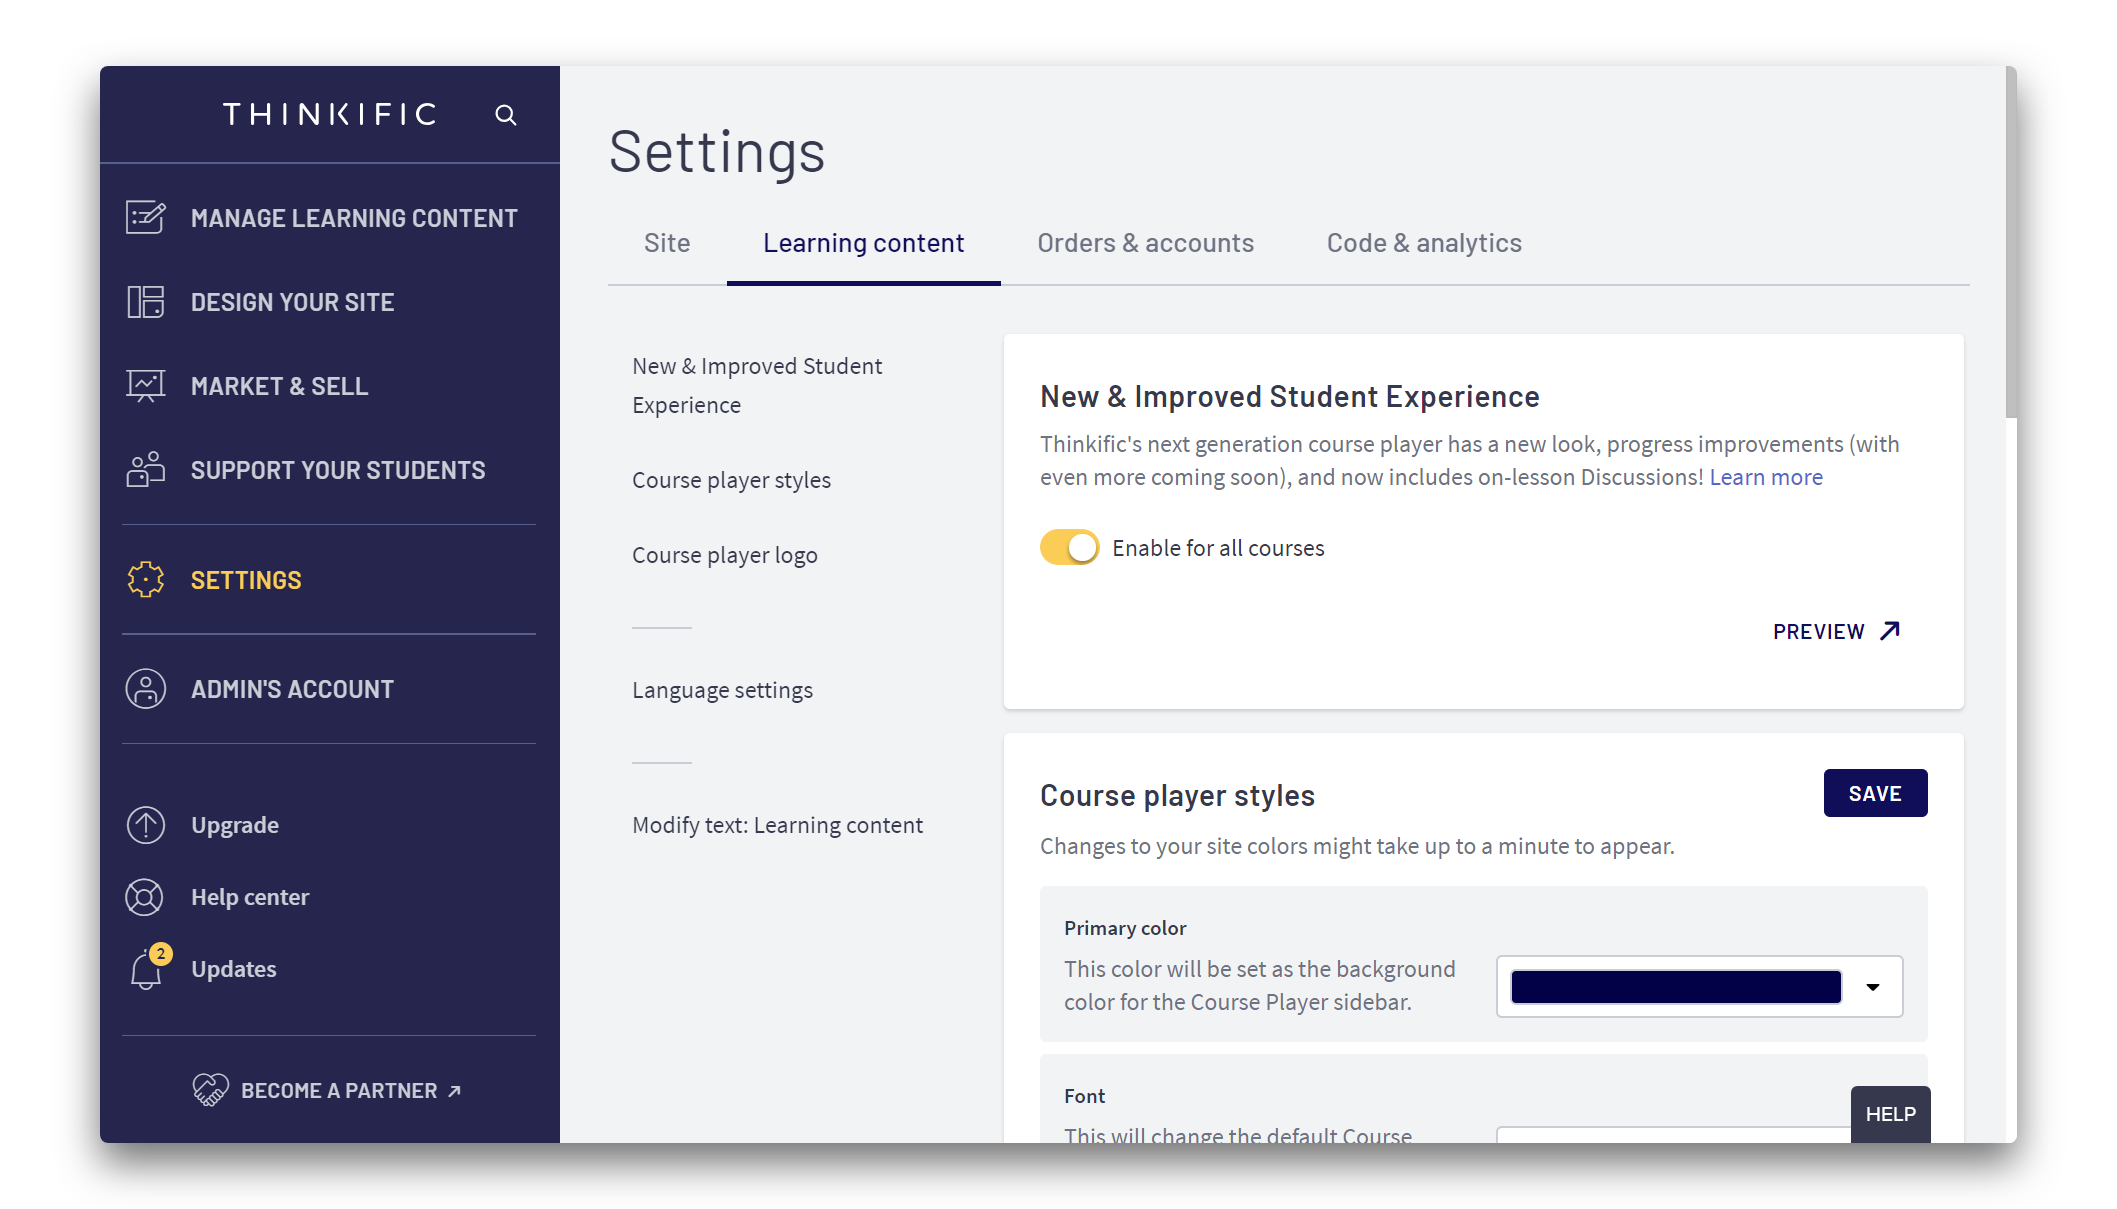 Settings > Learning Content > New & Improved Student Experience